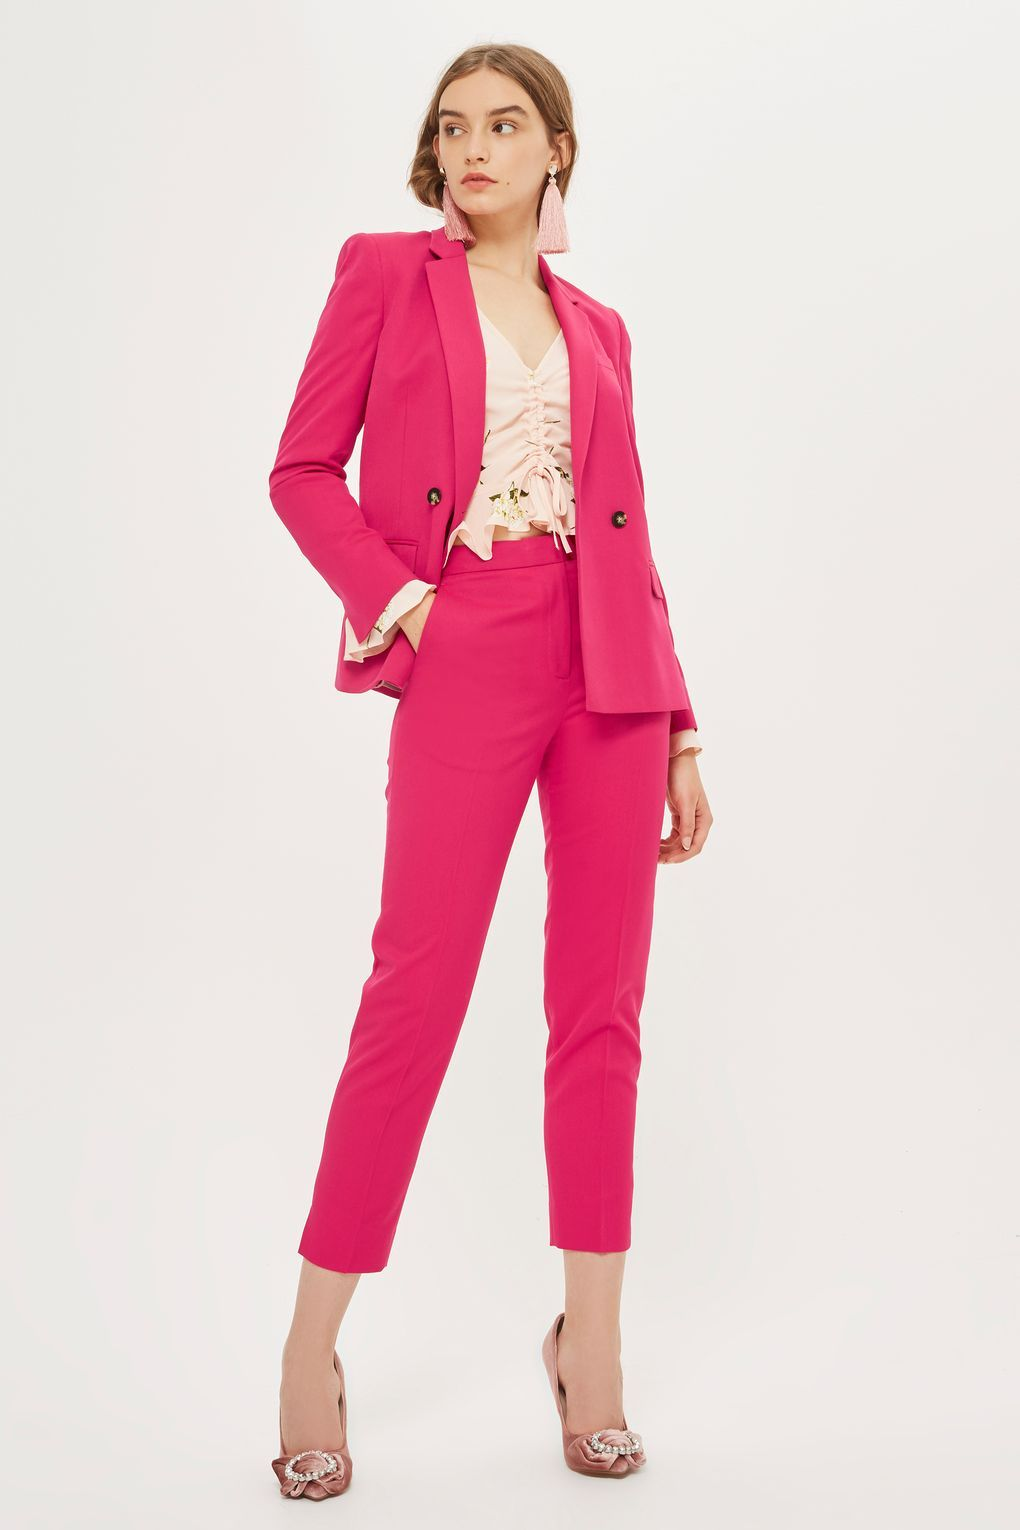 515235ec1f54 TOPSHOP DOUBLE BREASTED SUIT JACKET AND TROUSERS SET ...